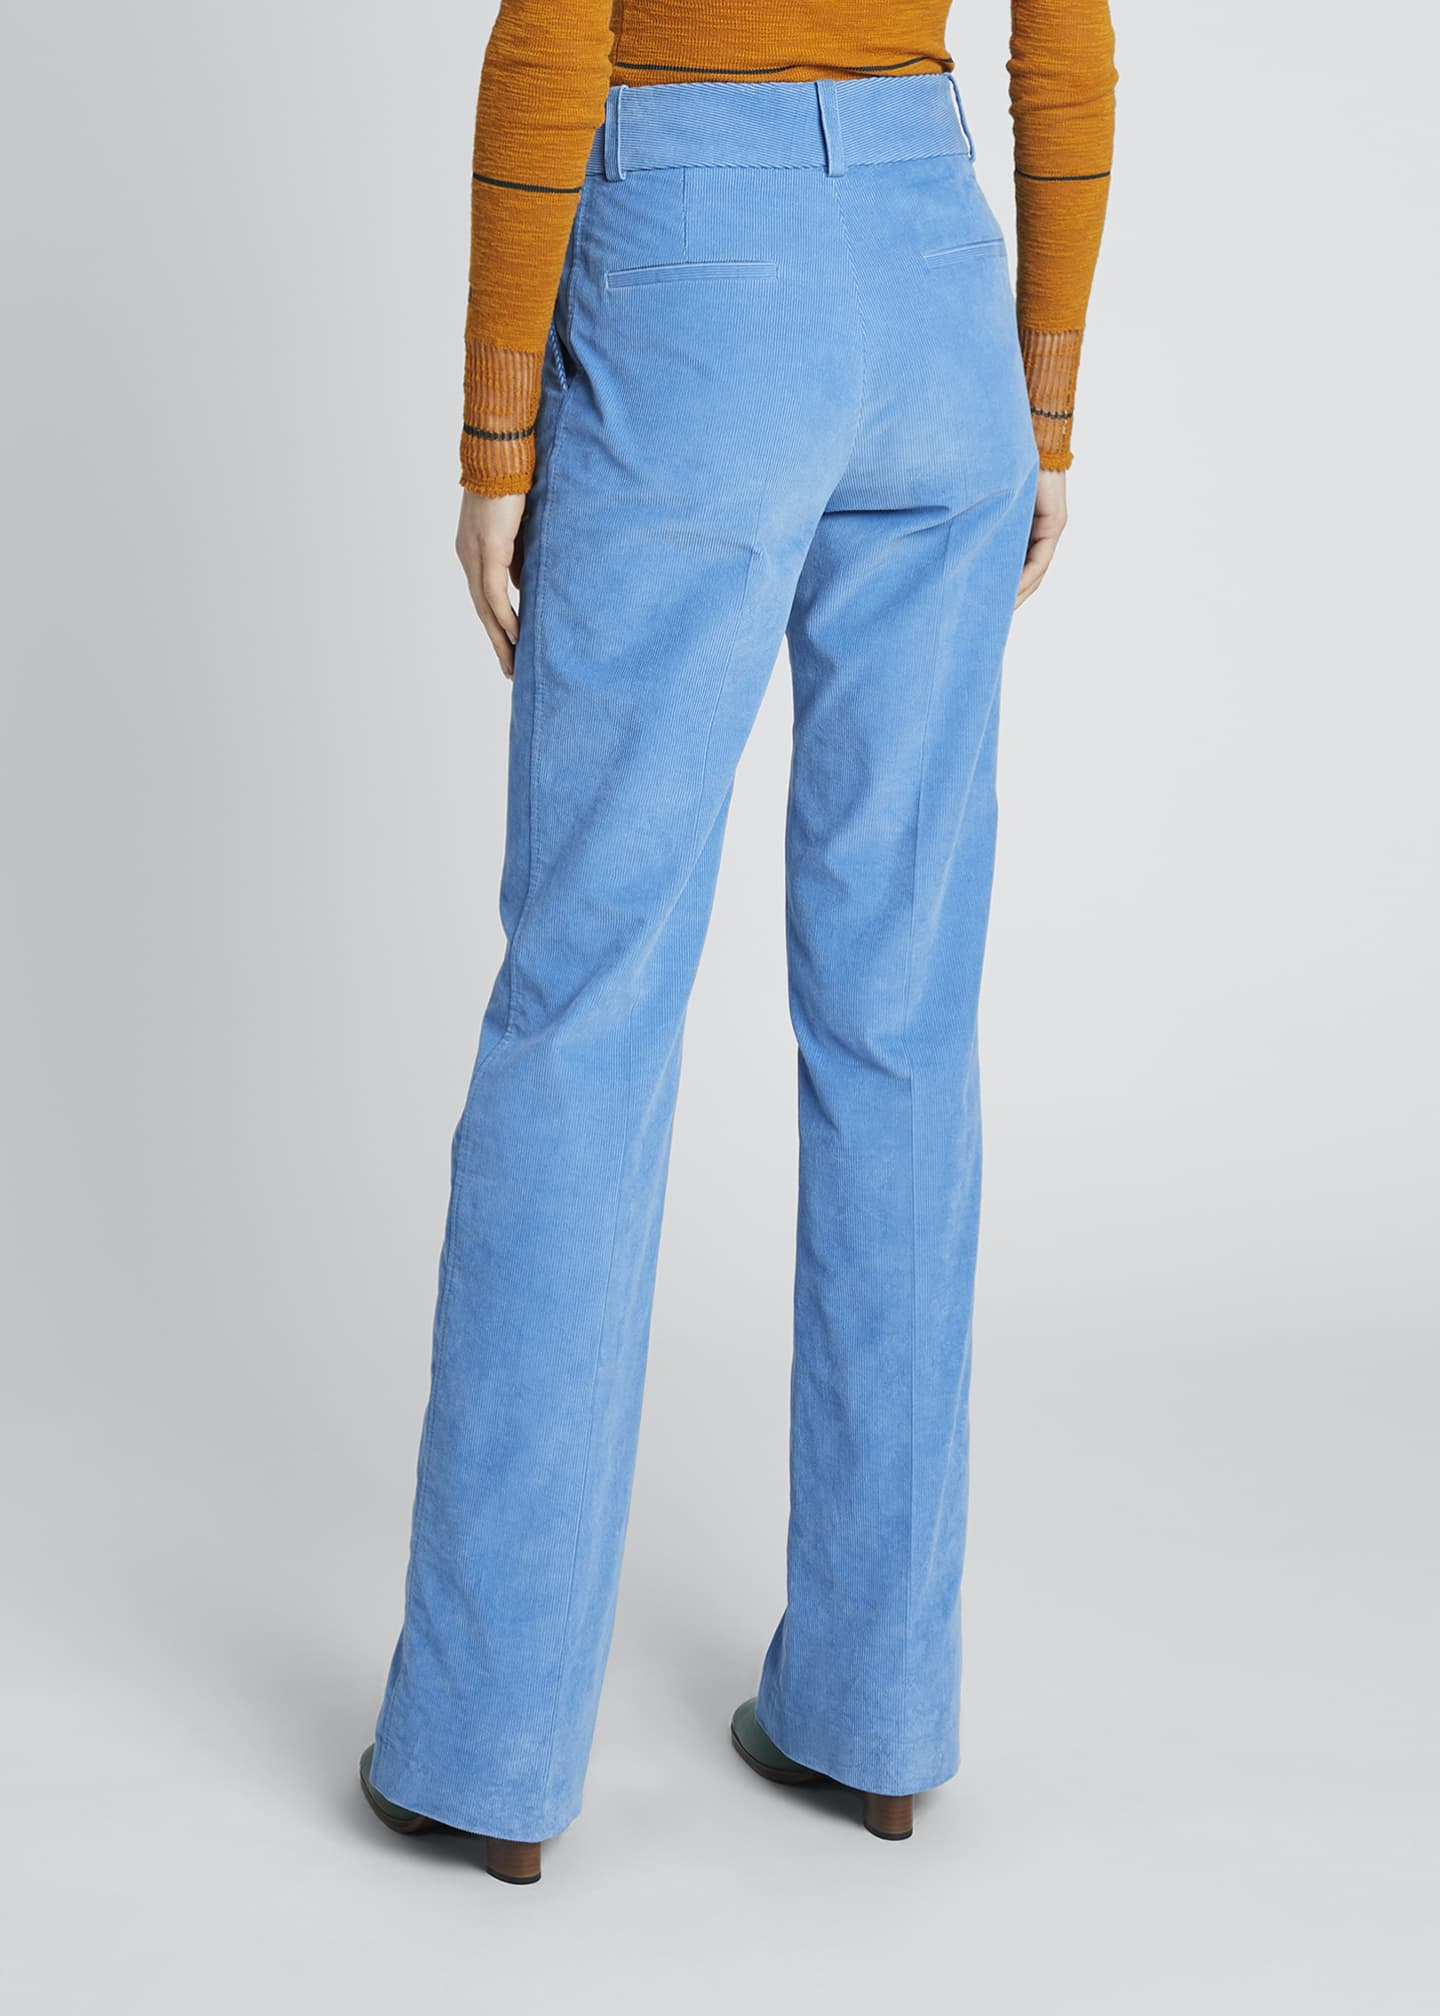 Image 2 of 4: Corduroy Pants